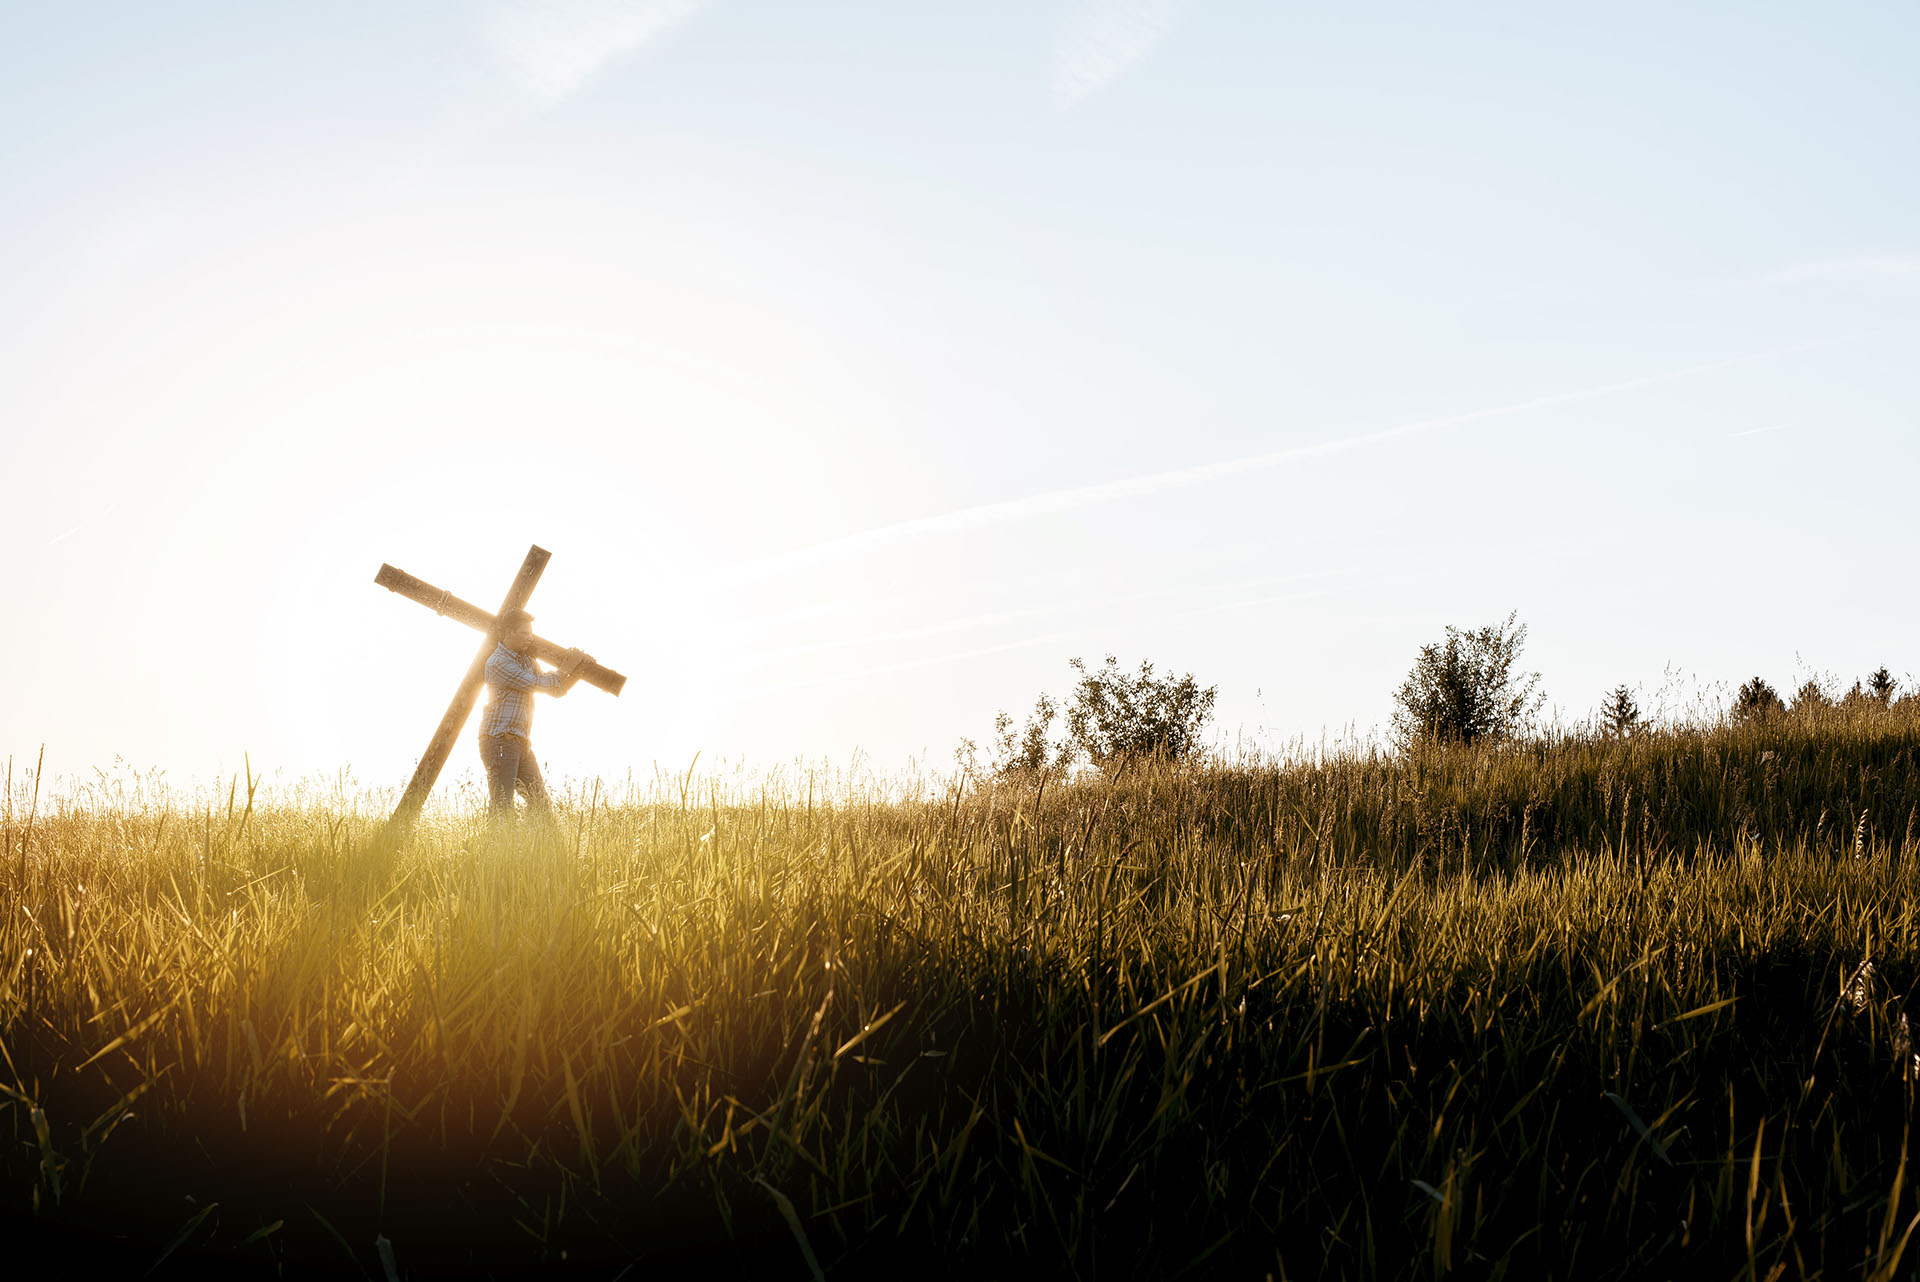 Questions That Make You Think >> Podcast 39: Dying to Follow Jesus - theegeneration.org